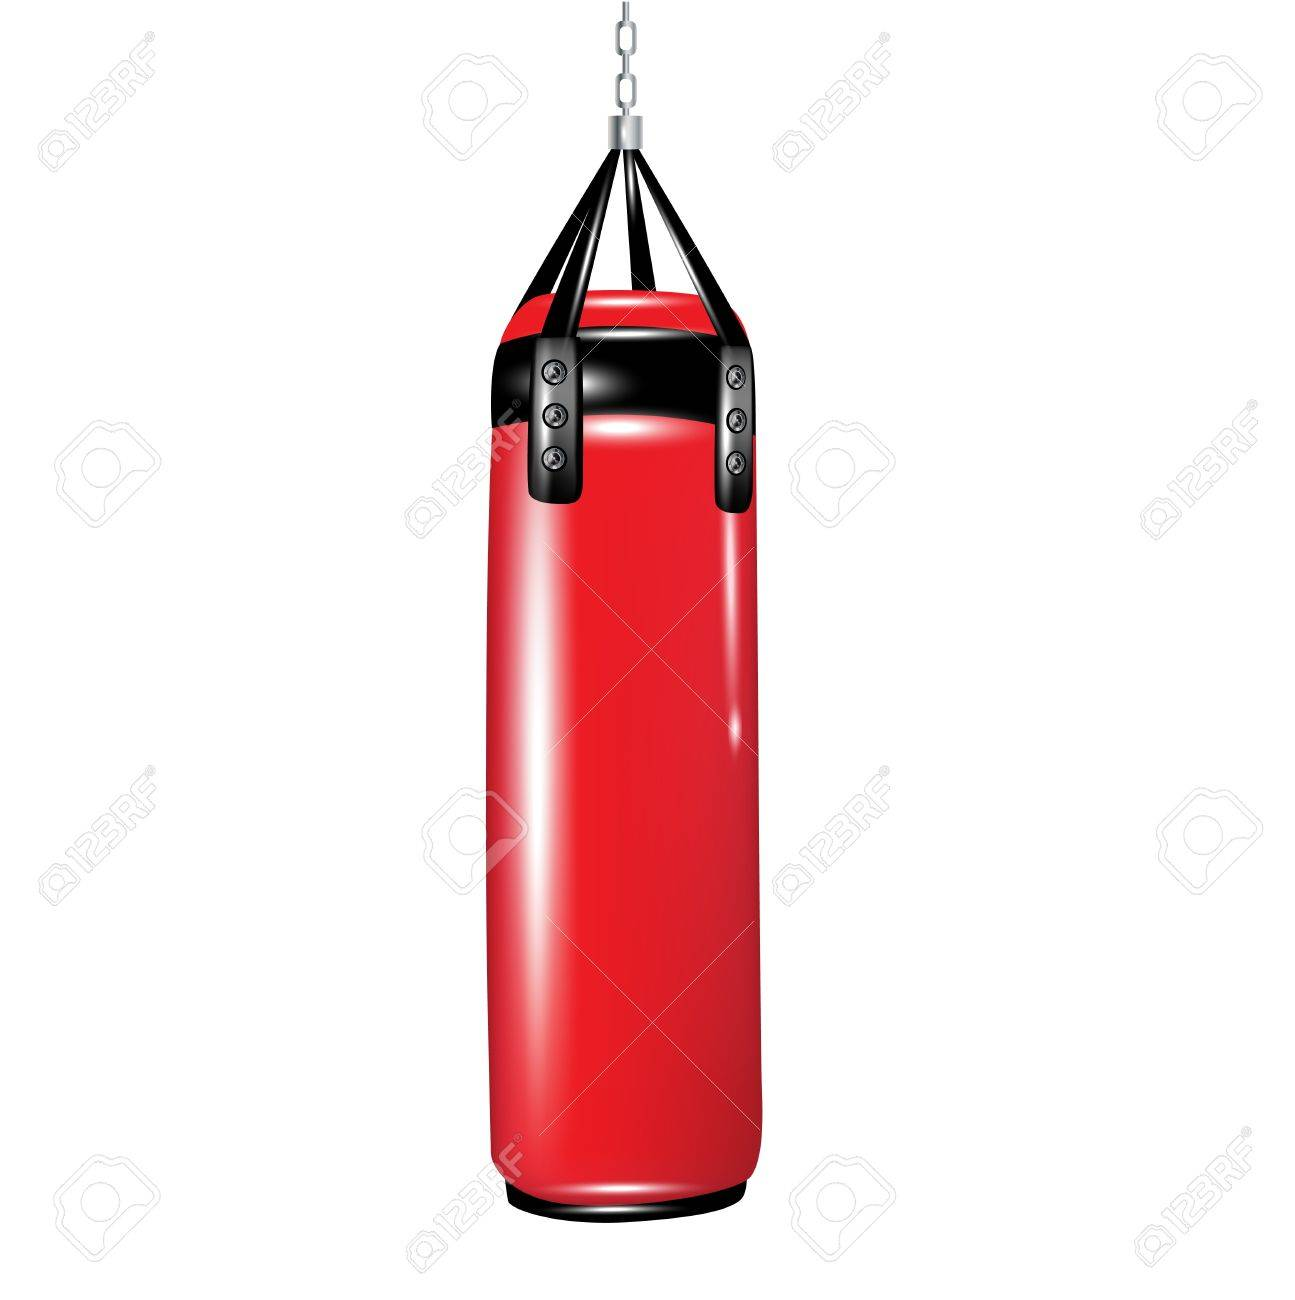 punching bag for boxing isolated on white.